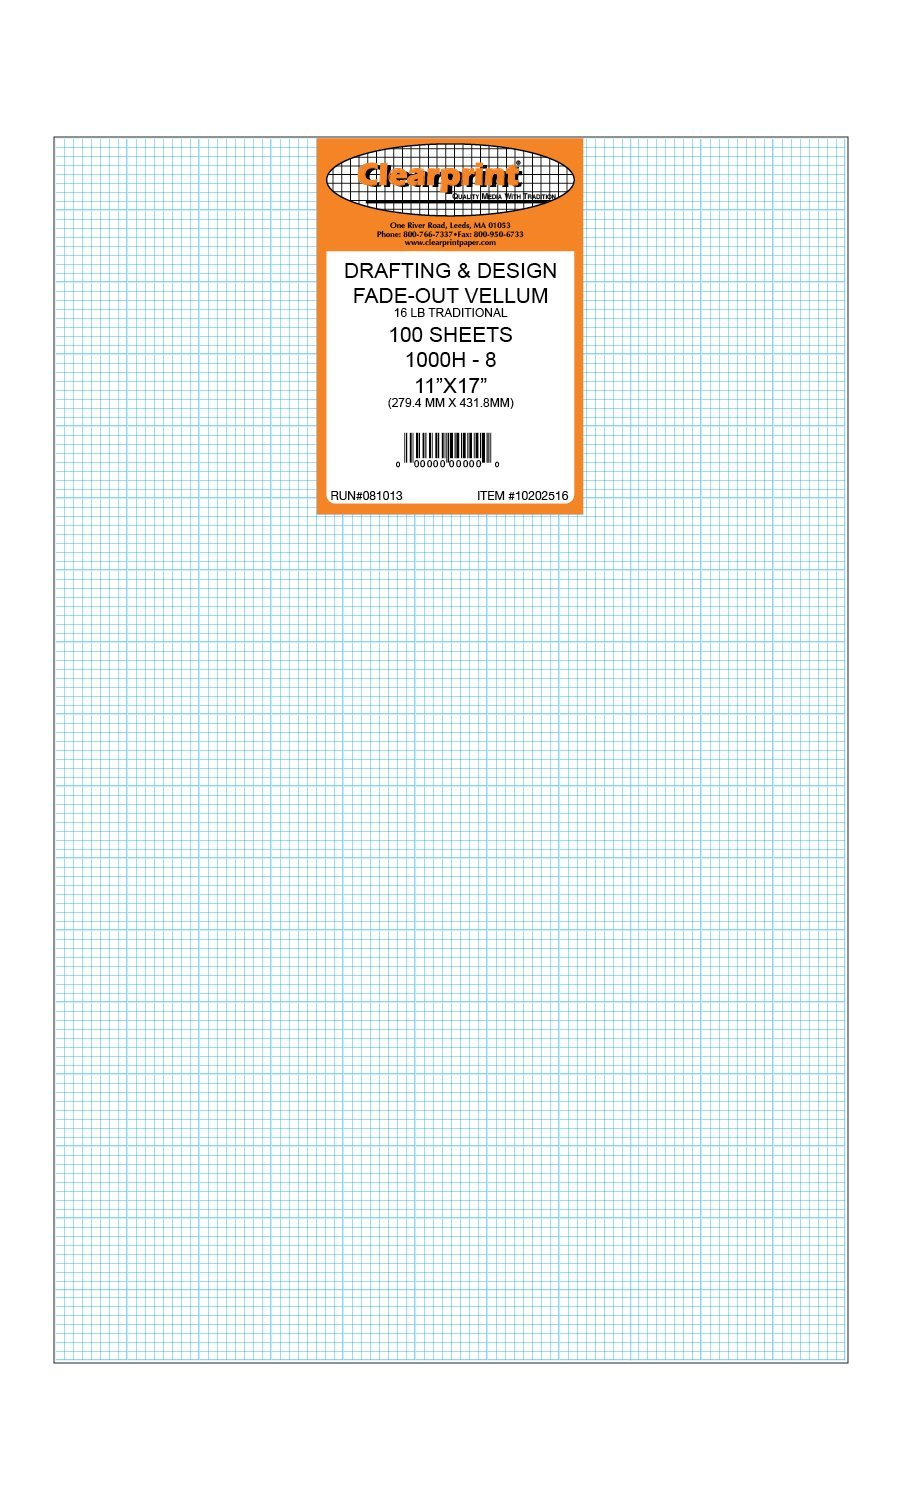 Clearprint 1000H Design Vellum Sheets with Printed Fade-Out 8x8 Grid, 16 Lb, 100% Cotton, 11 x 17 Inches, 100 Sheets Per Pack, 1 Each (10202516)